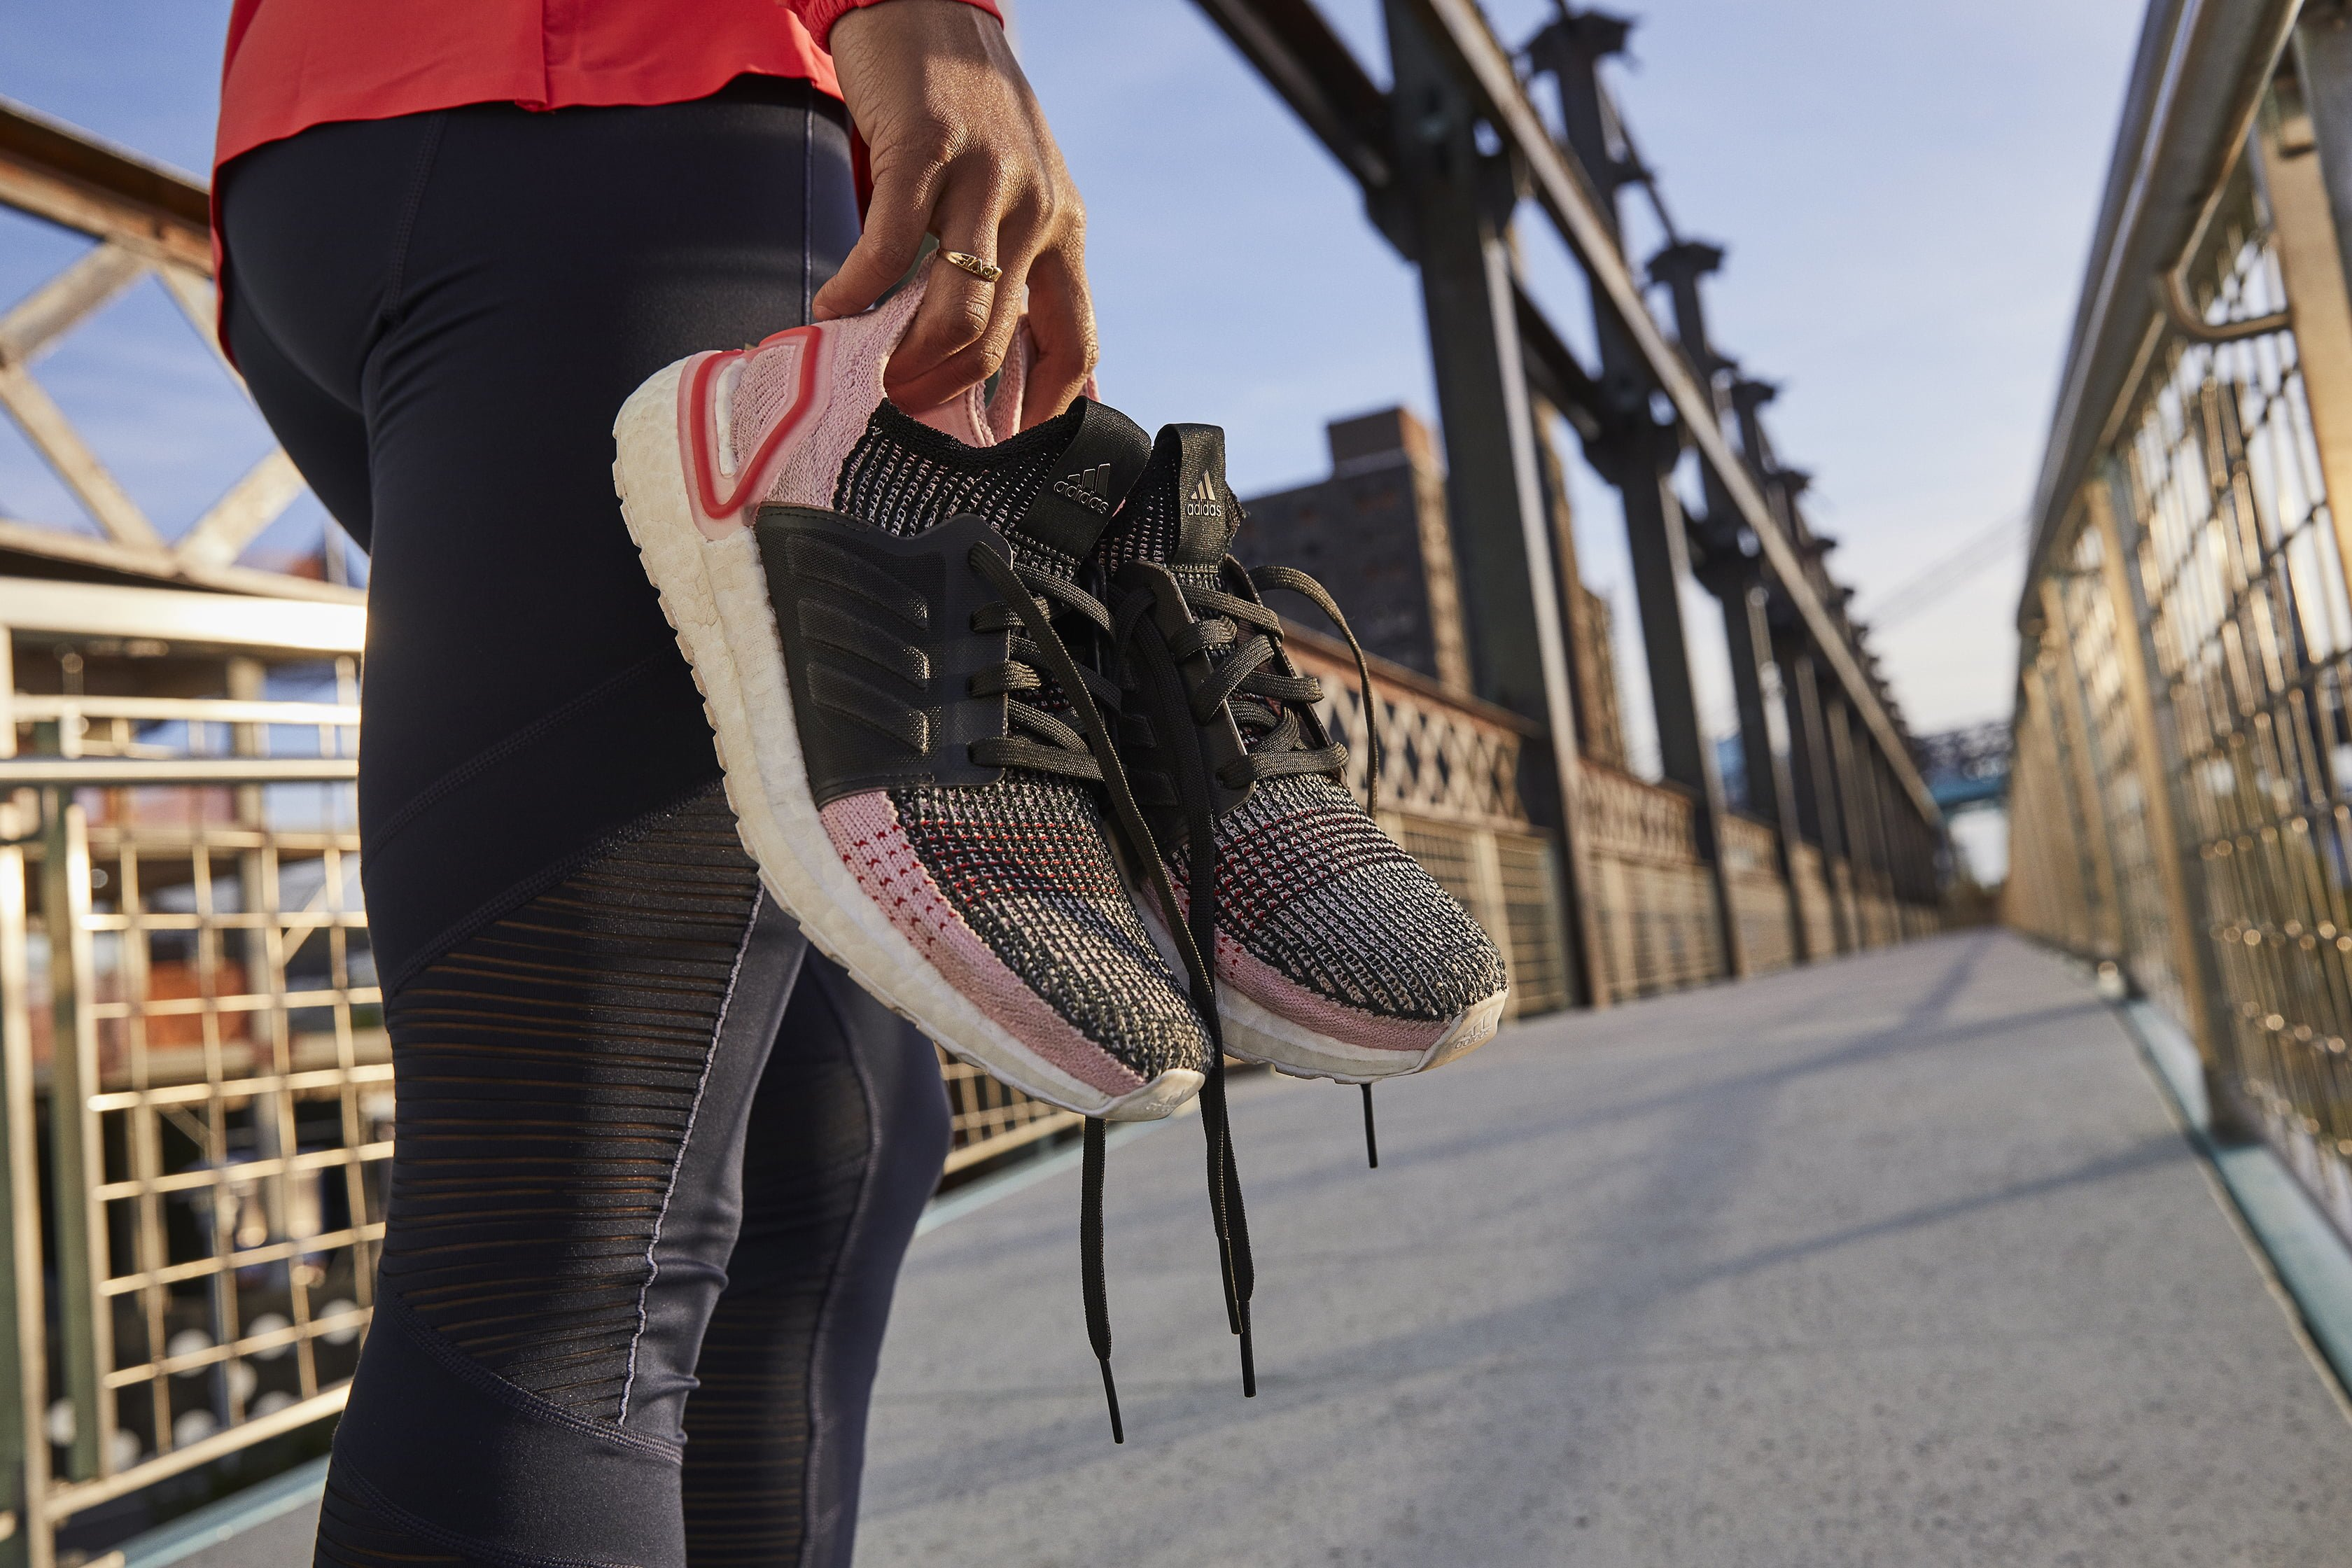 competitive price 77e7a e0615 Adidas Announces Bat Orchid, A New Limited-Release Colourway Of the  Revolutionary Adidas Ultraboost 19, Designed For Female Runners Everywhere